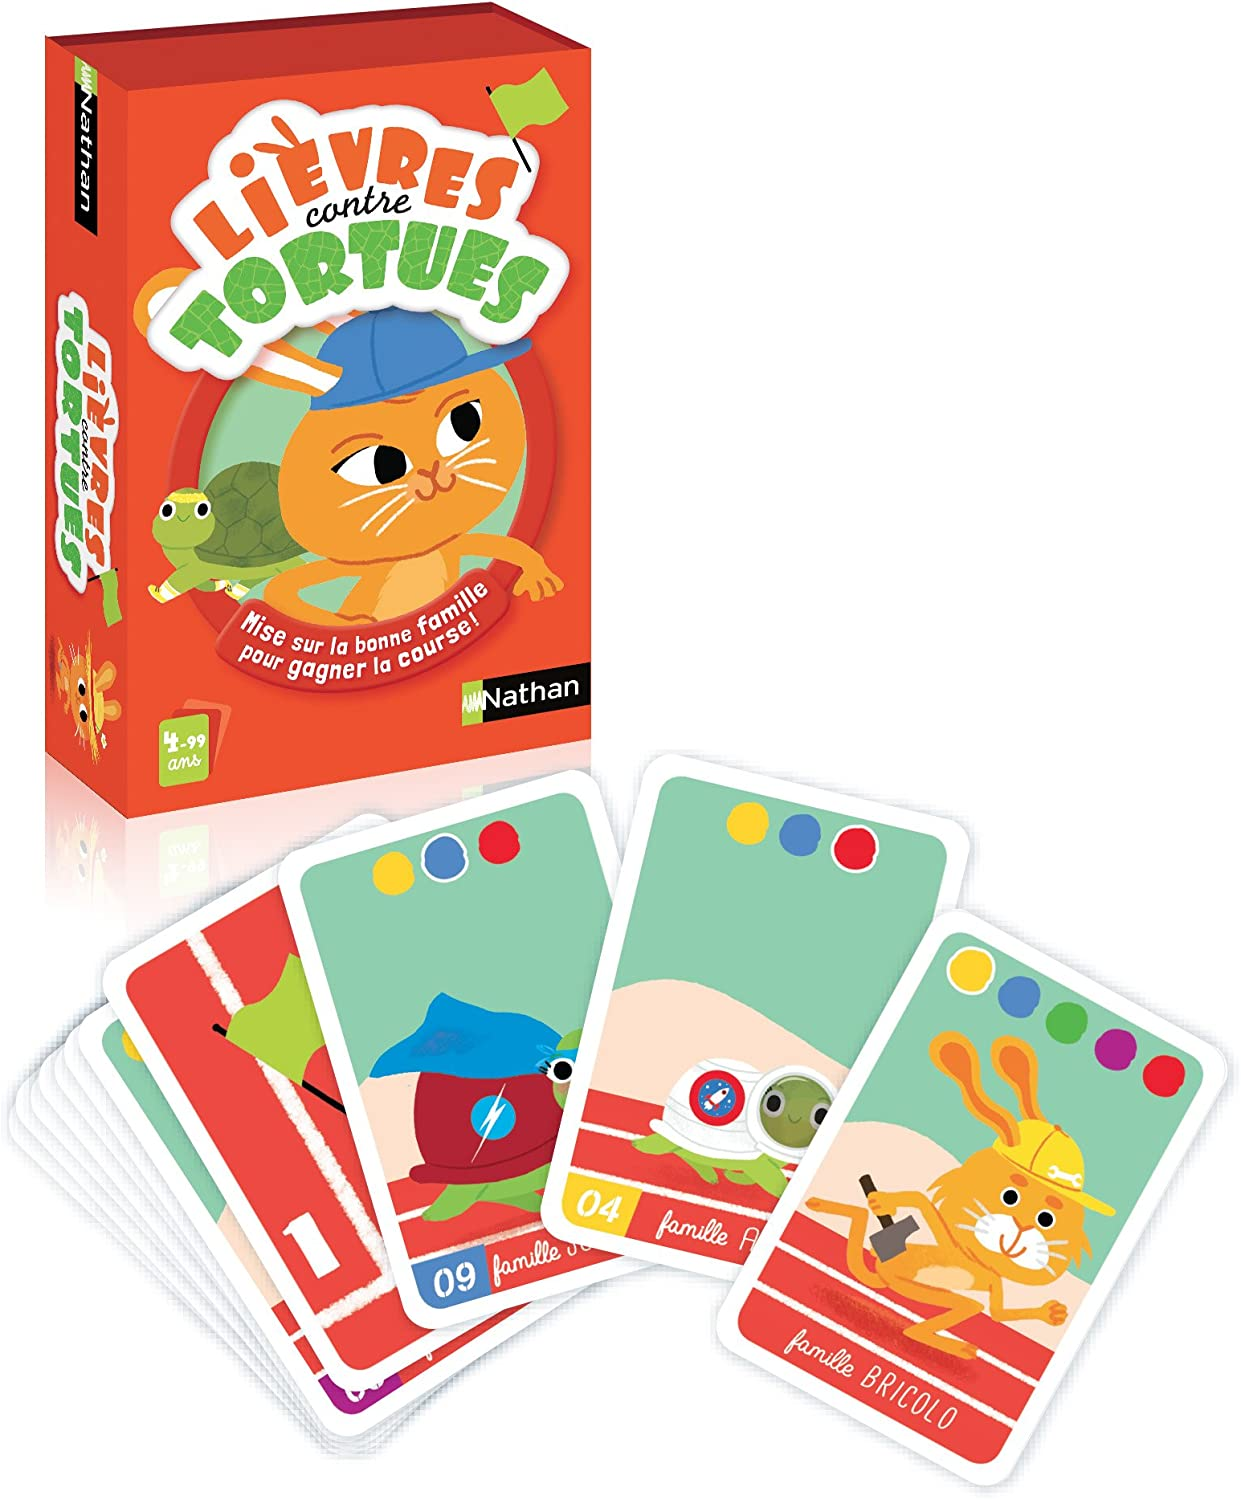 Nathan–31427–'Lièvres Contre Tortues' Card Game [English Language Not Guaranteed]